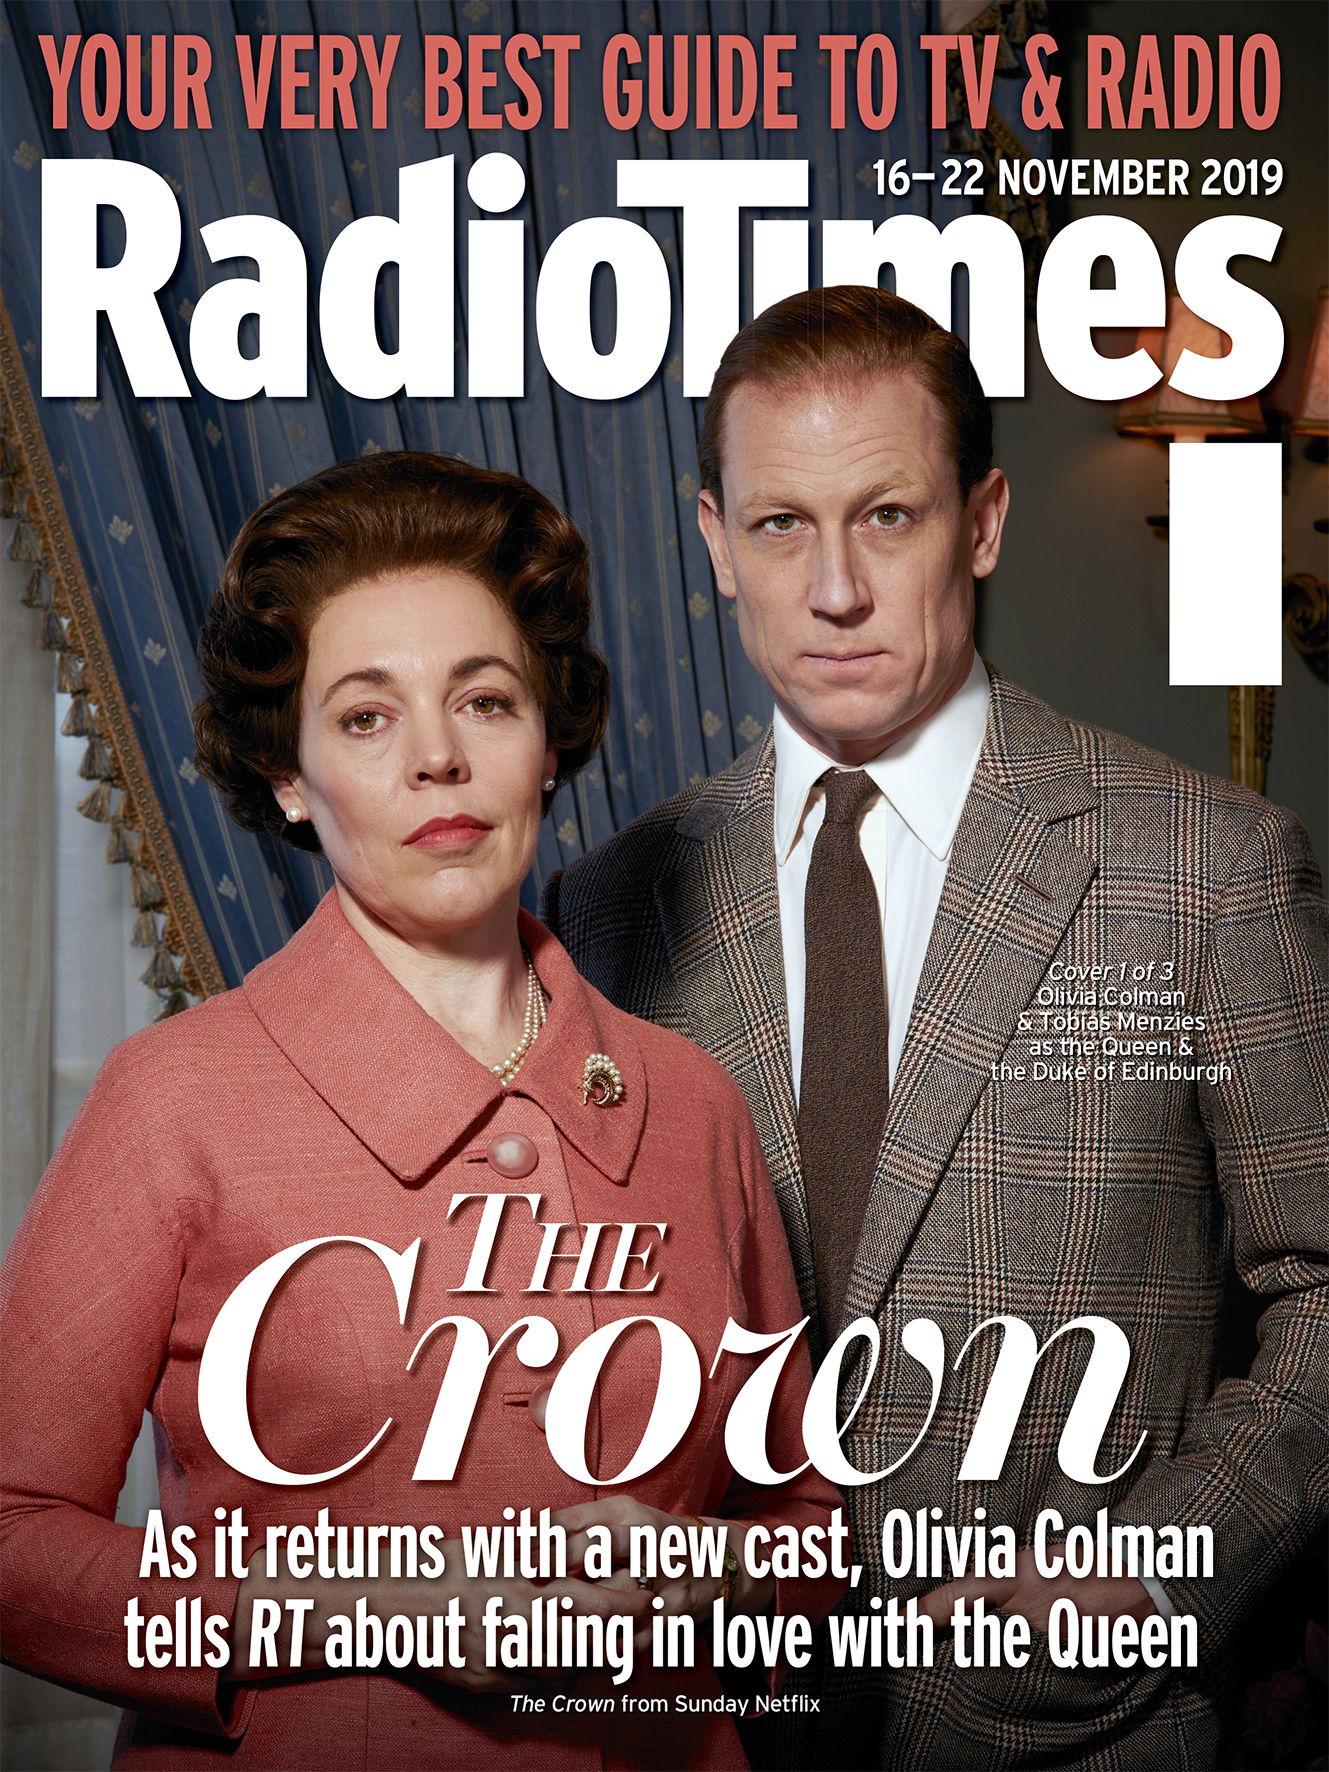 Olivia Colman and Tobias Menzies